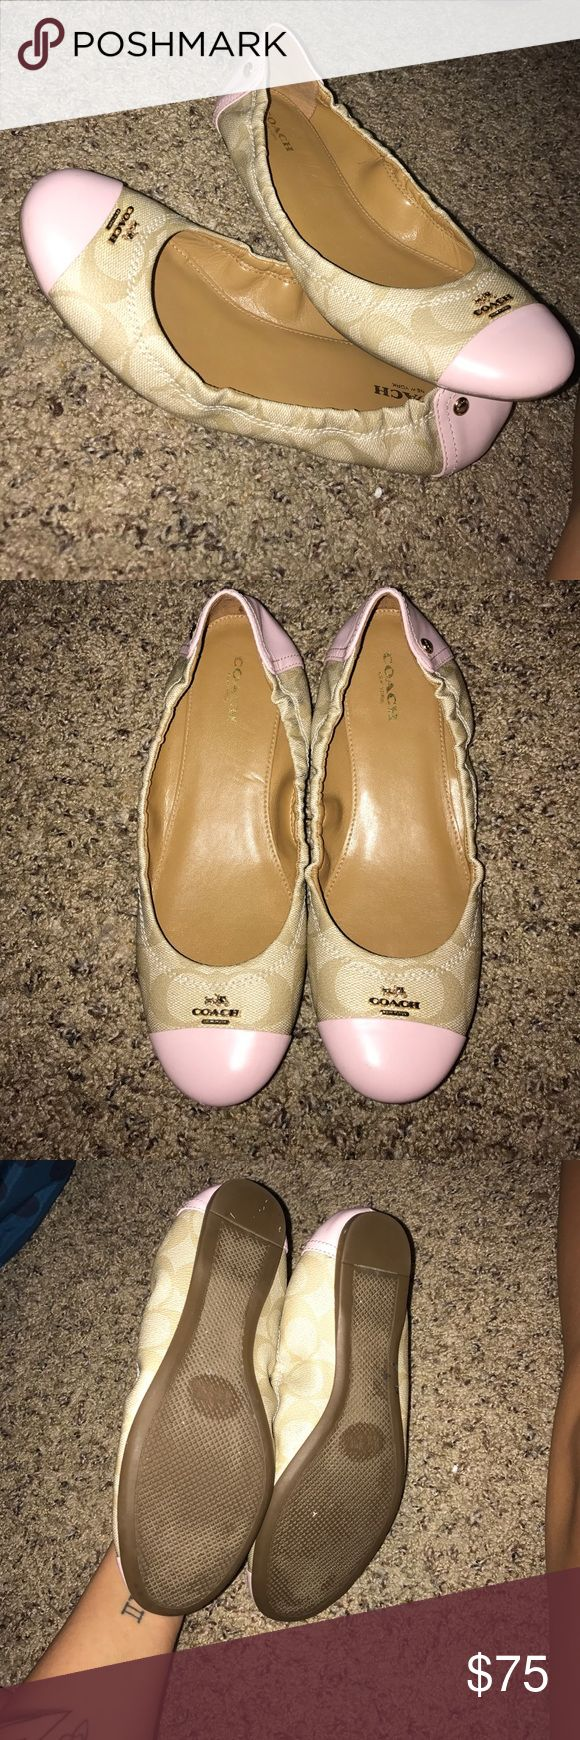 Coach flats Like new Coach flats. Worn 2 times they are a 7.5 I usually wear a 7 and they fit perfect Coach Shoes Flats & Loafers